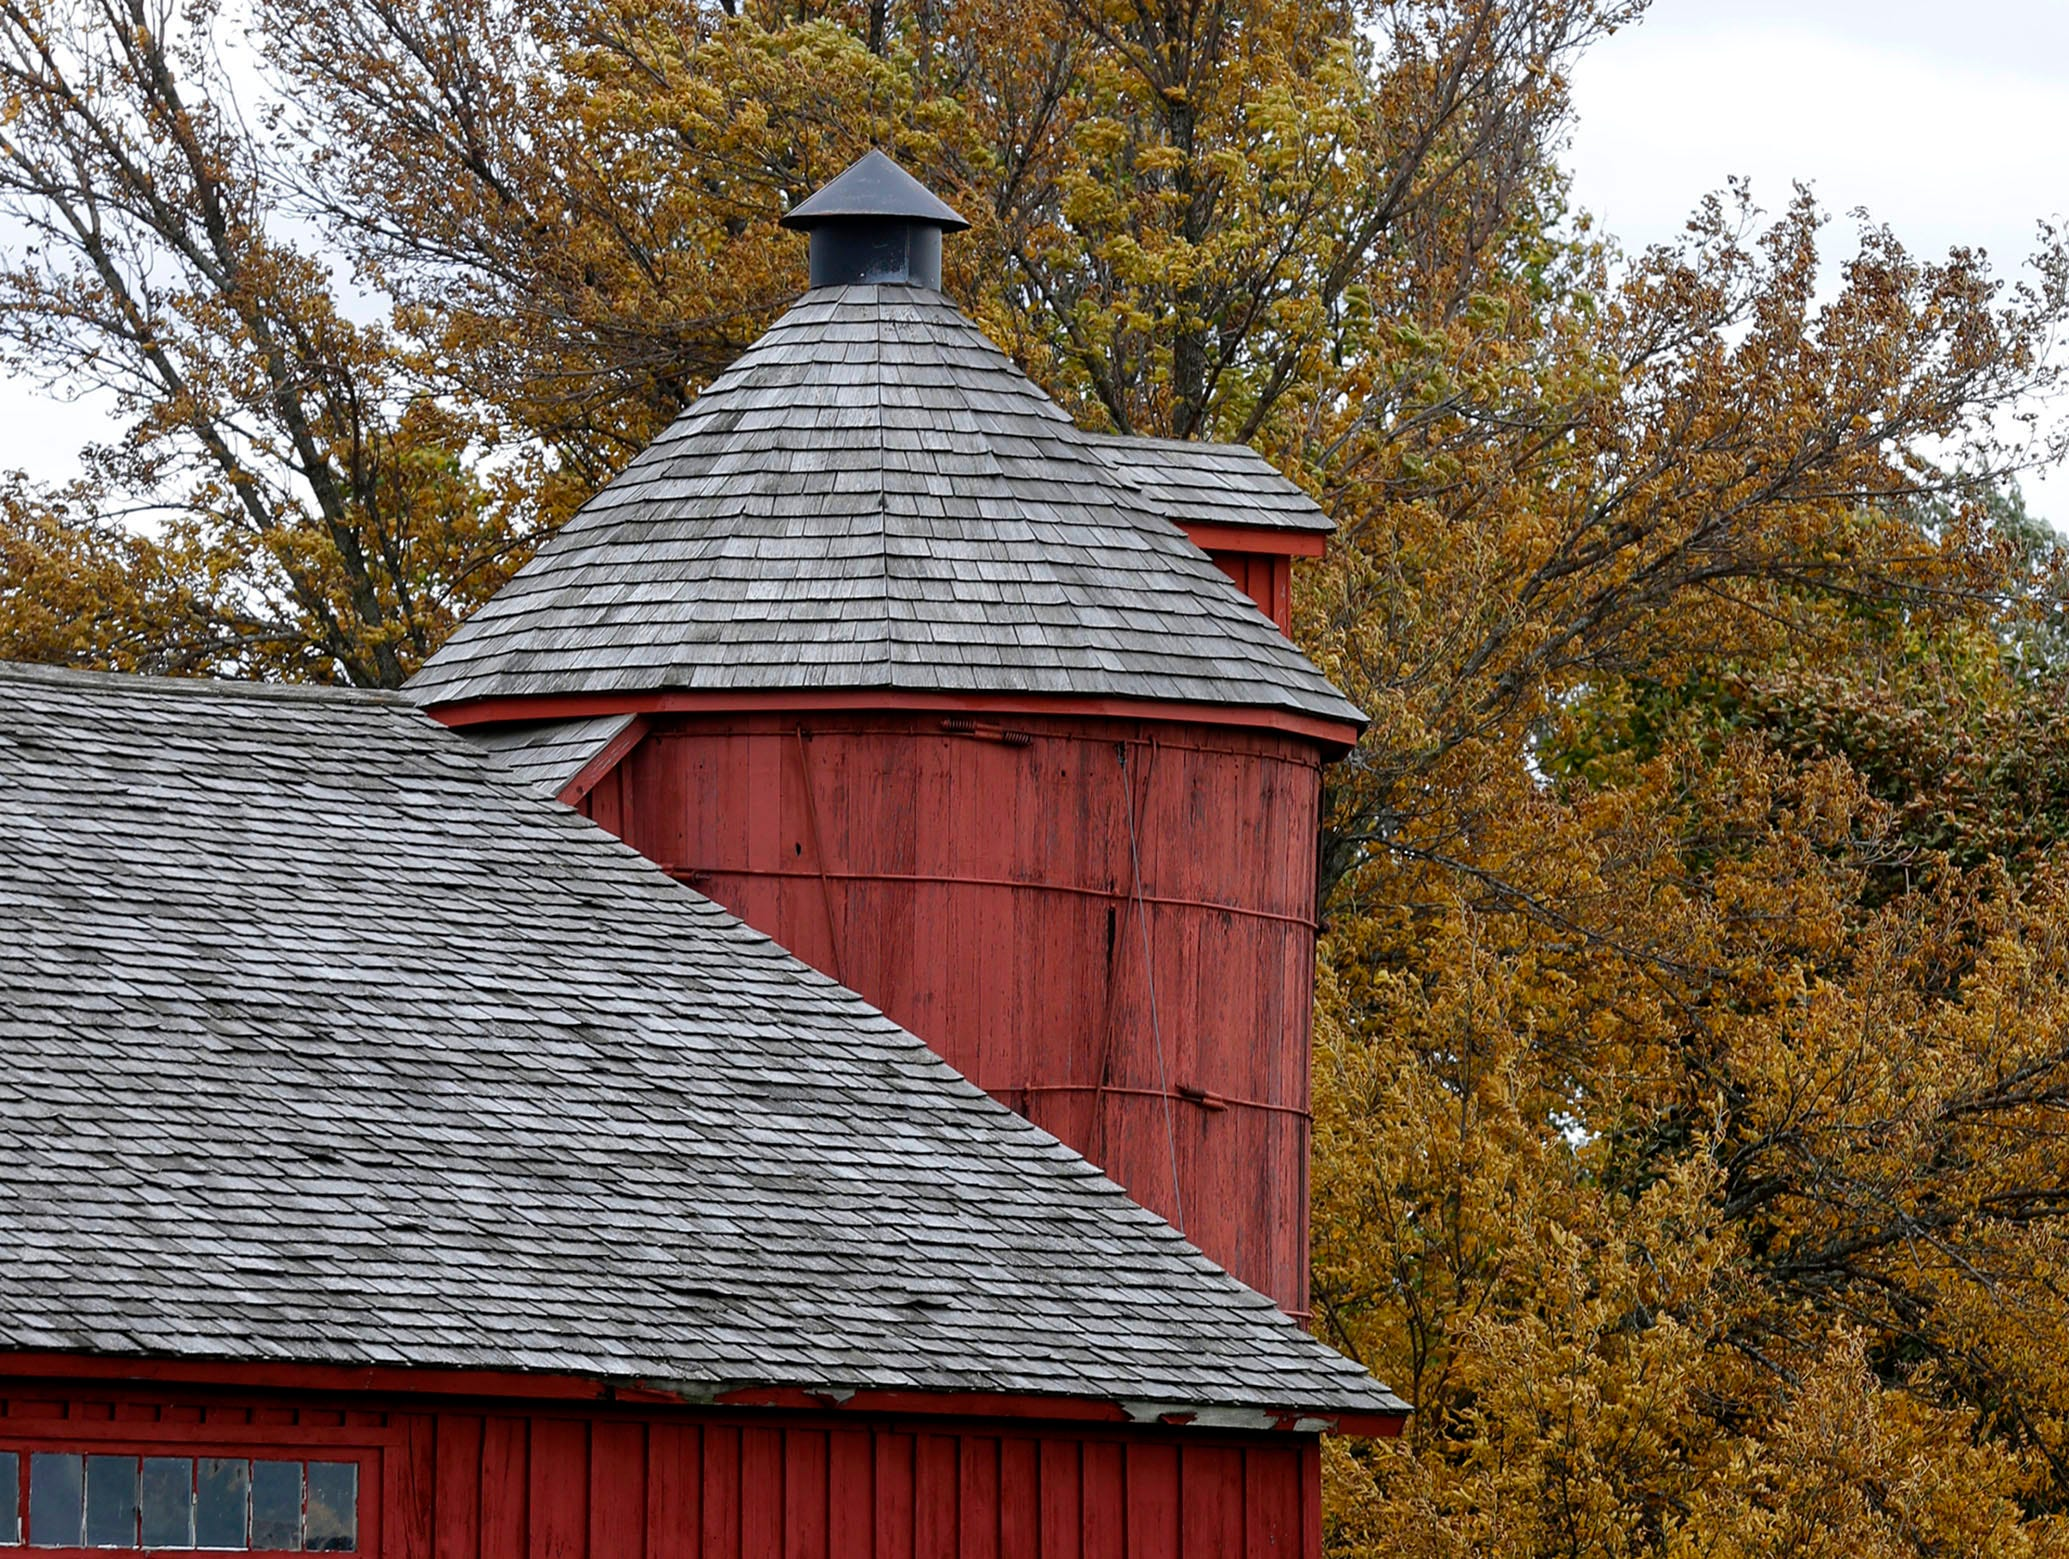 The barn at the Sheboygan County Historical Museum contrasts with trees turning color, Thursday, October 11, 2018, in Sheboygan, Wis.